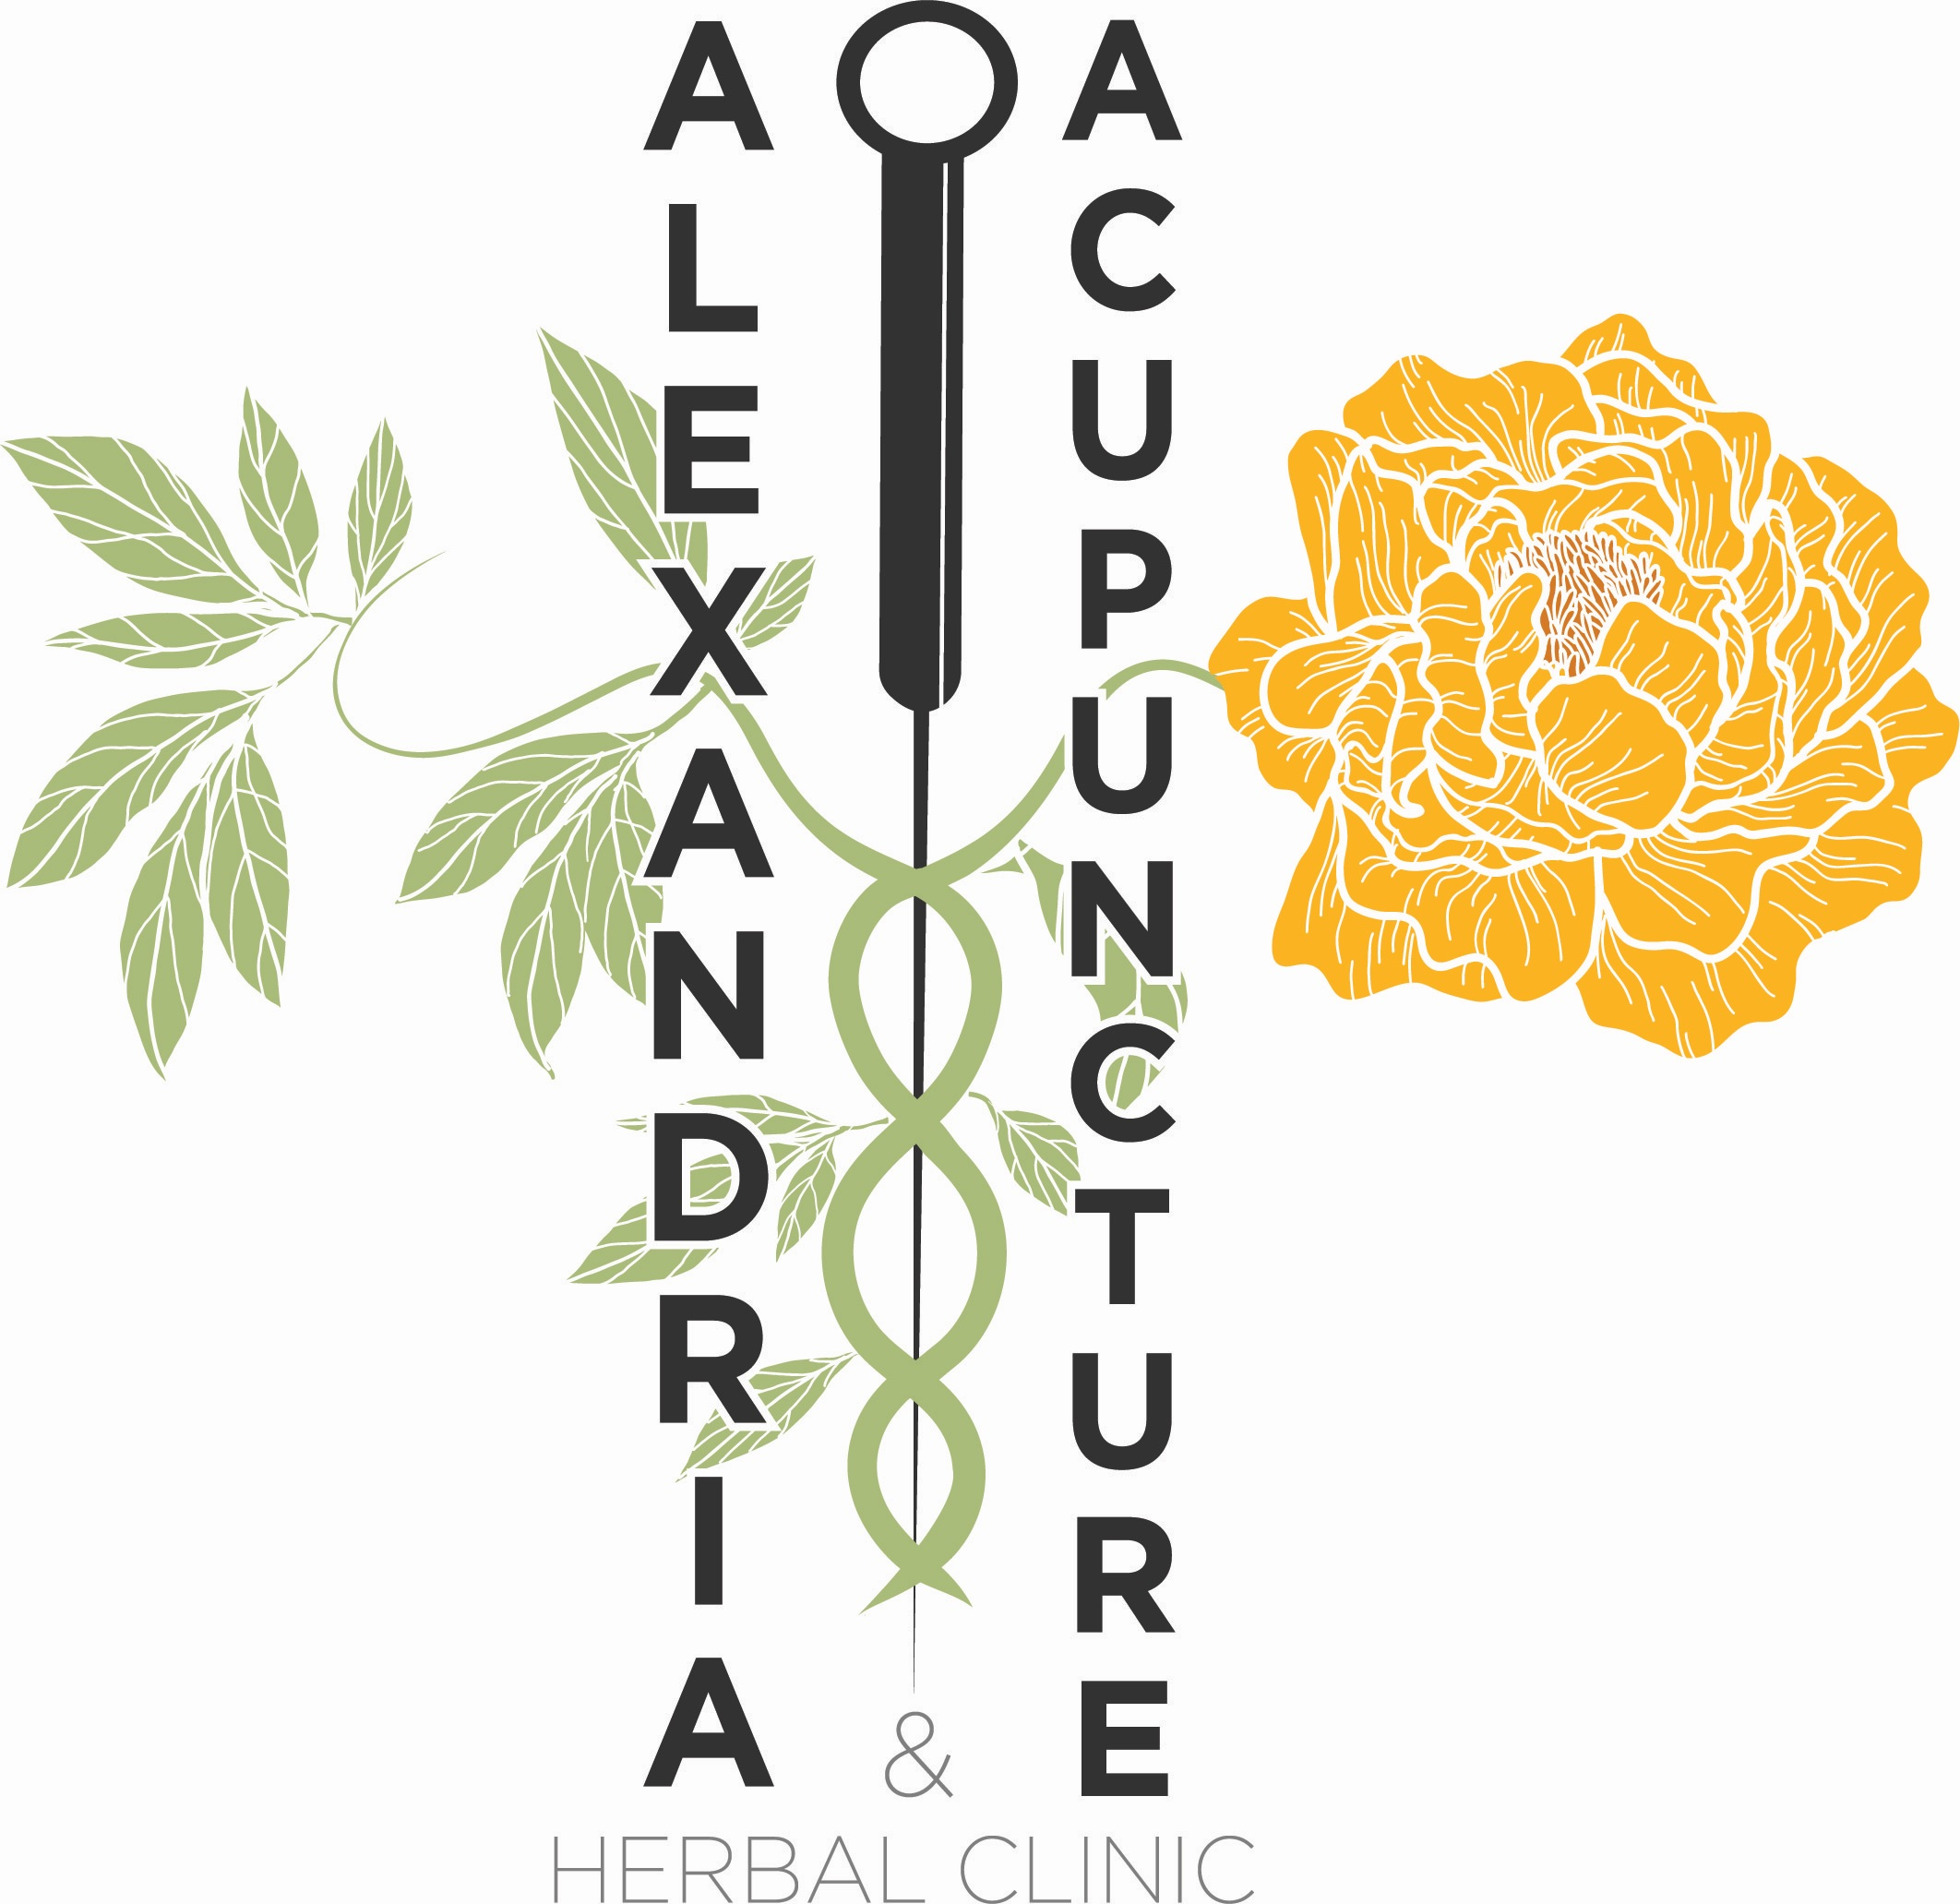 Alexandria Acupuncture & Herbal Clinic